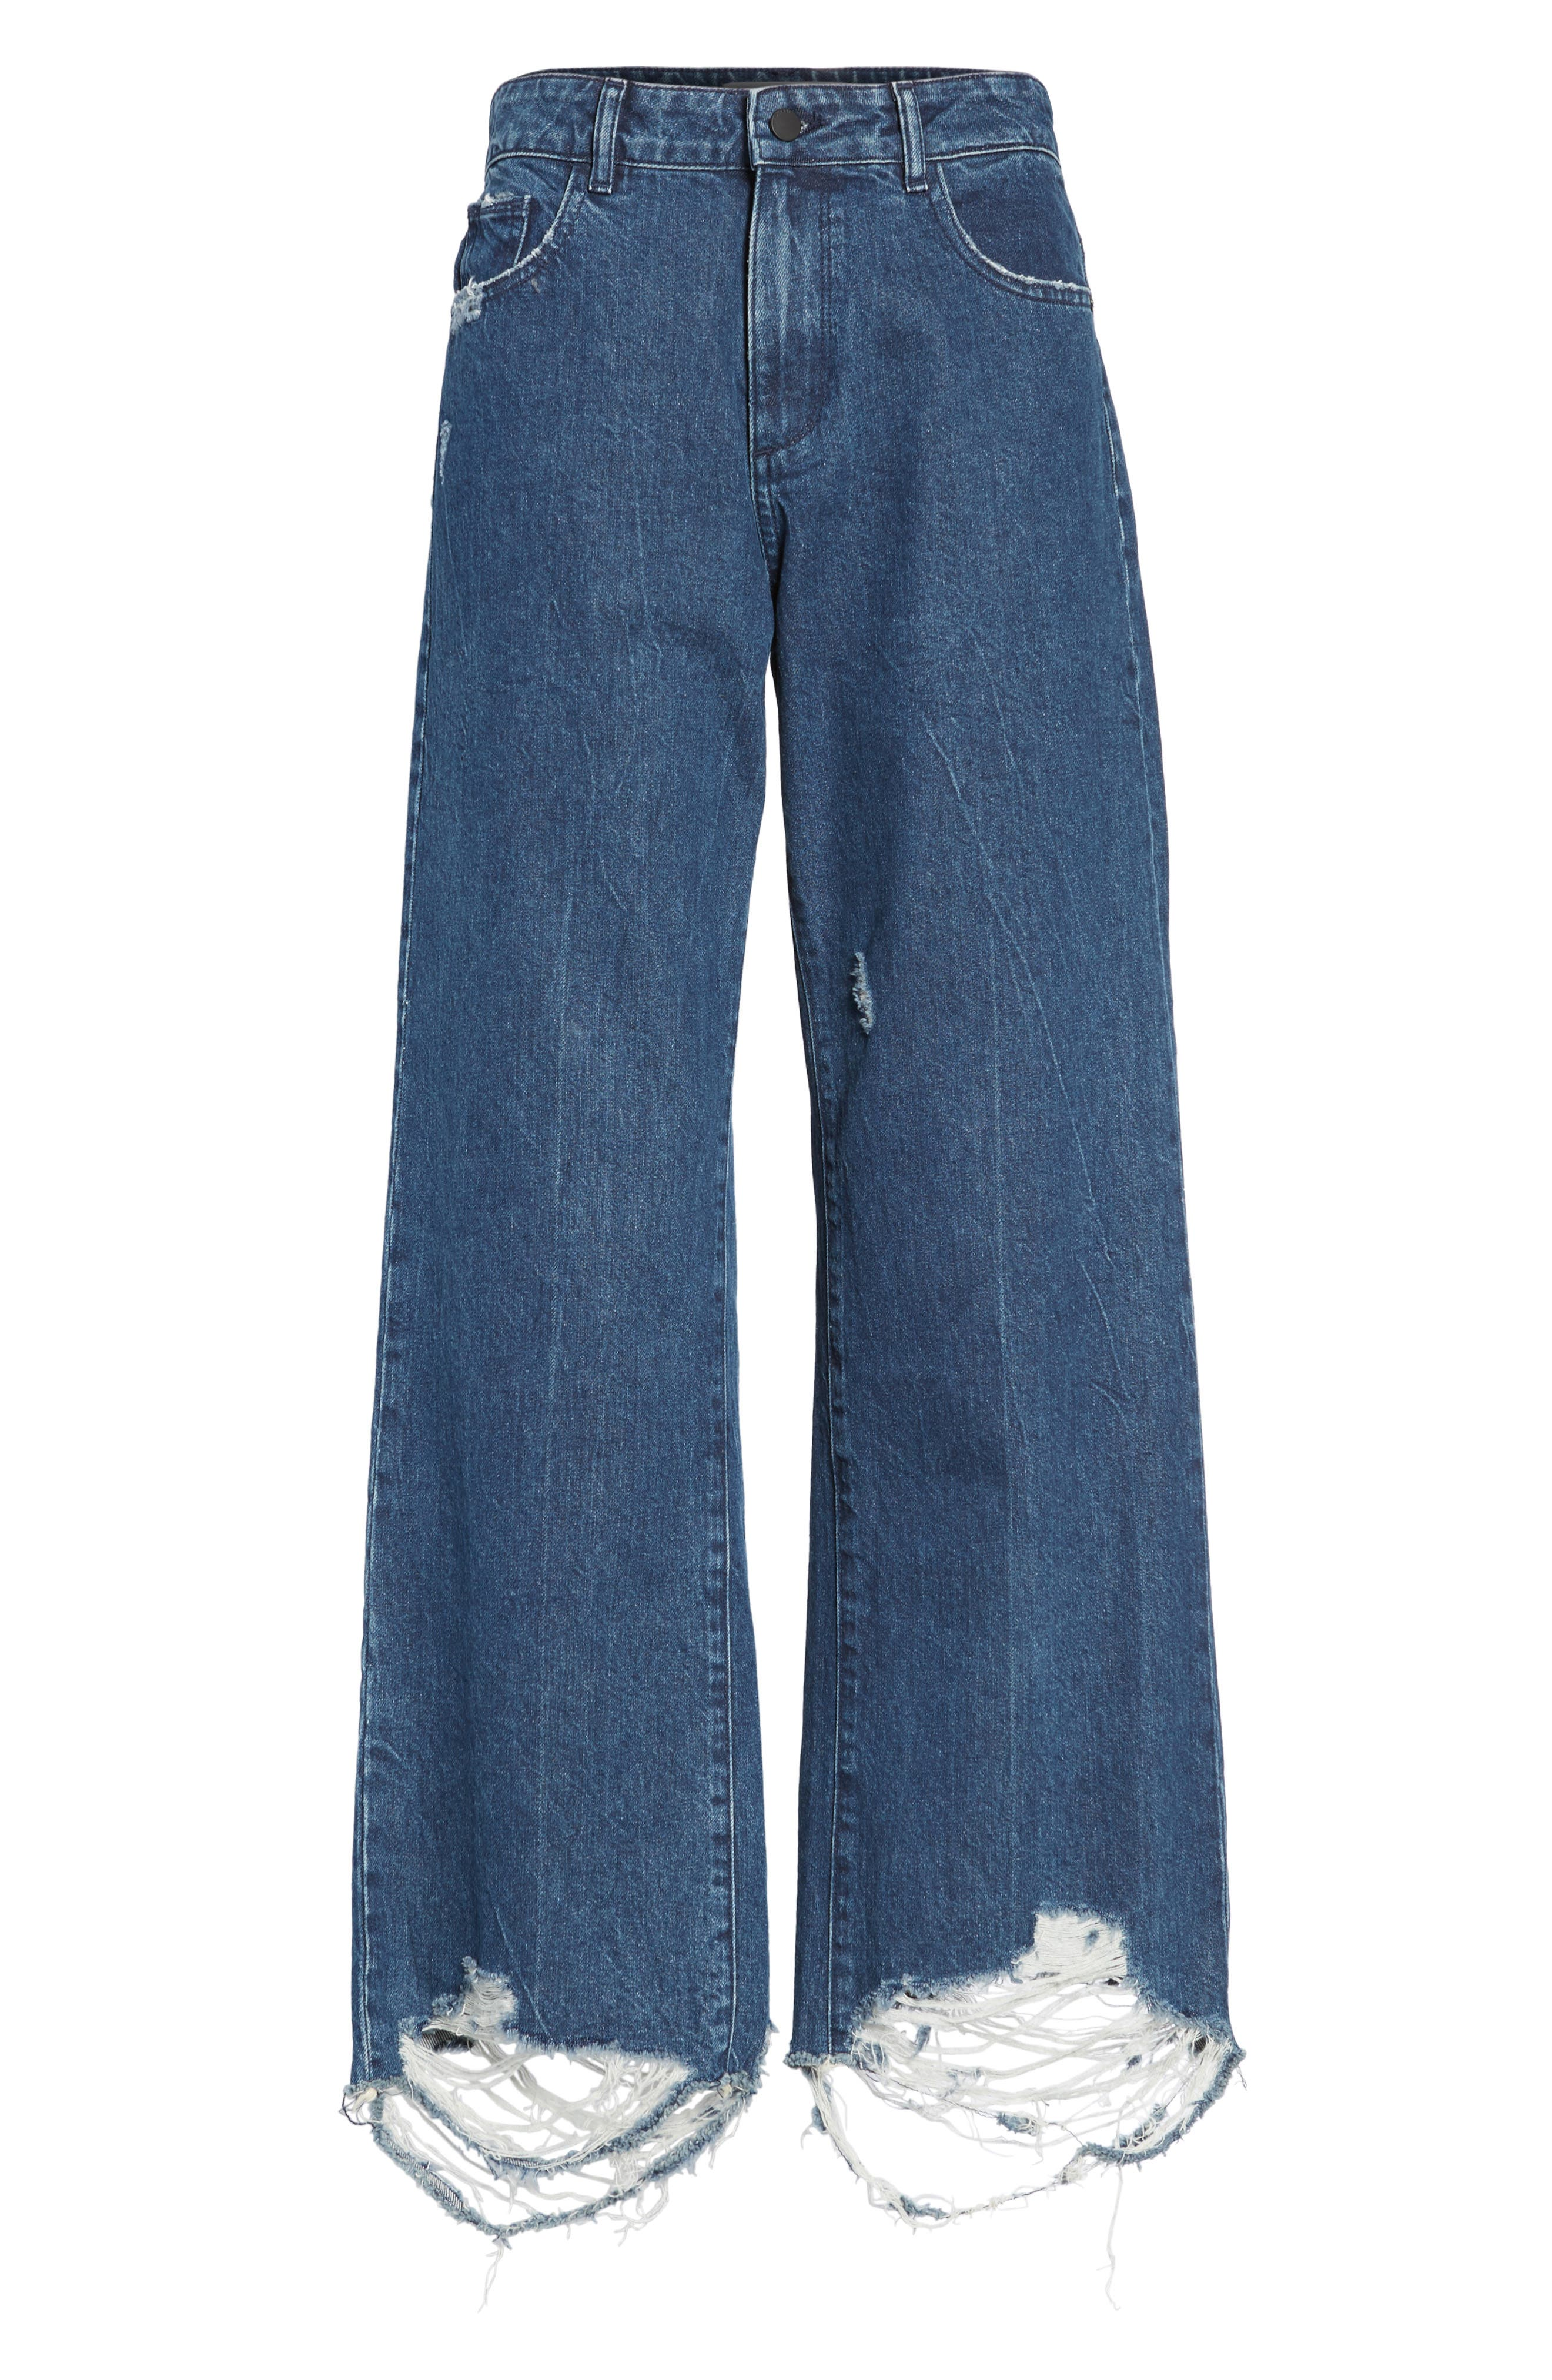 Hepburn High Waist Wide Leg Jeans,                             Alternate thumbnail 6, color,